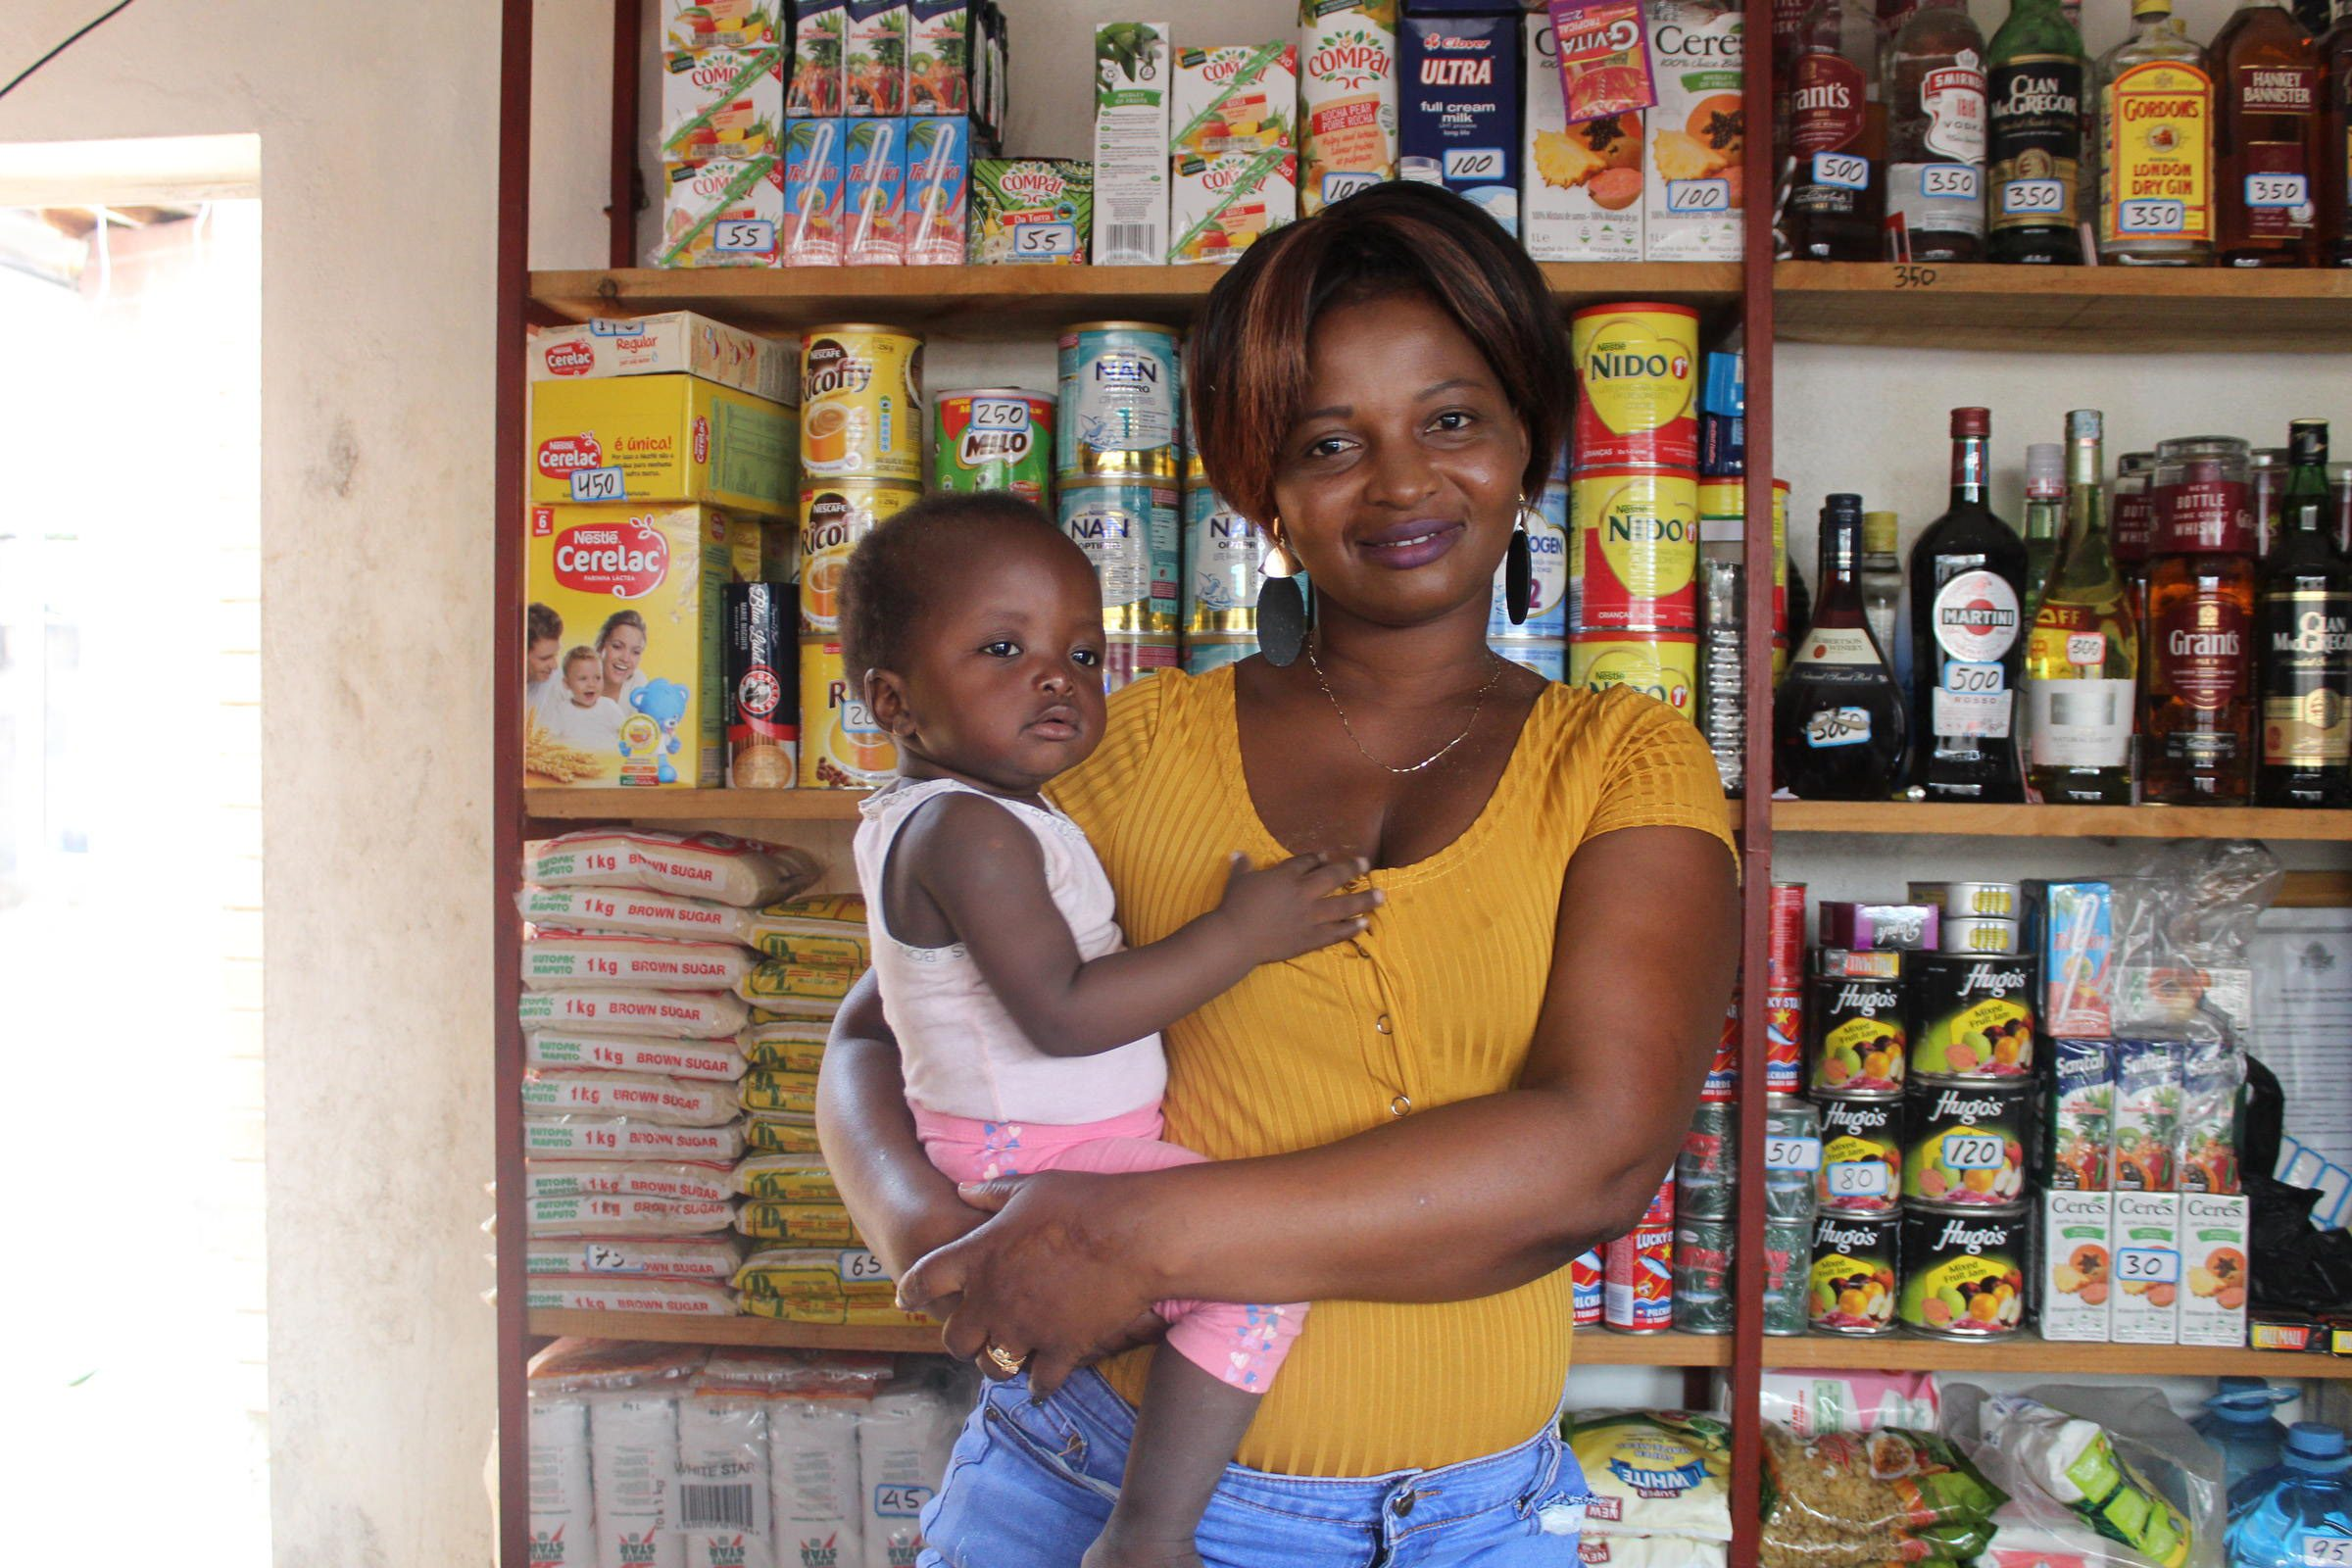 Many responsibilities of motherhood are examples of unpaid care work